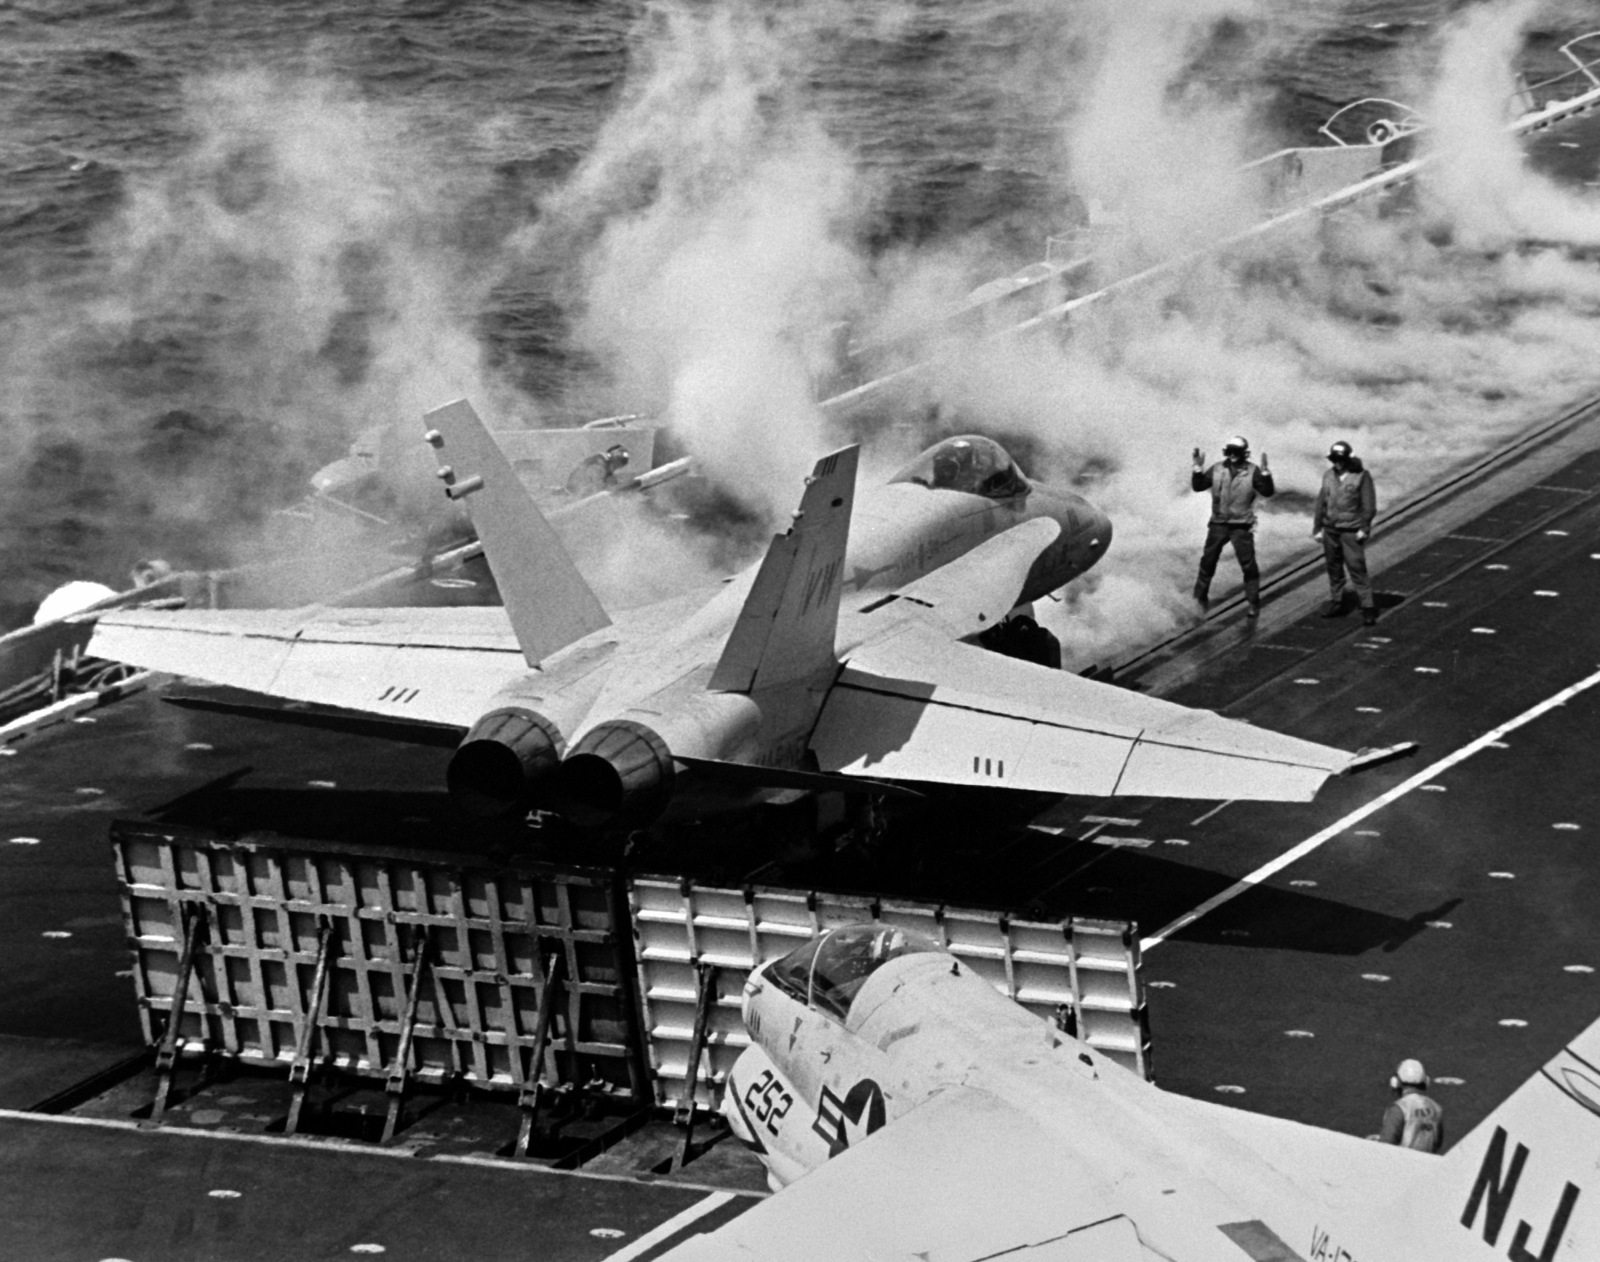 Right rear view of an F/A-18 Hornet aircraft assigned to Marine Fighter Attack Squadron 314 (VMFA-314) preparing for takeoff from the aircraft carrier USS CONSTELLATION (CV-64) during an operational evaluation (OPEVAL). In the foreground is an A-7 Corsair  II aircraft from Light Attack Squadron 122 (VA-122)